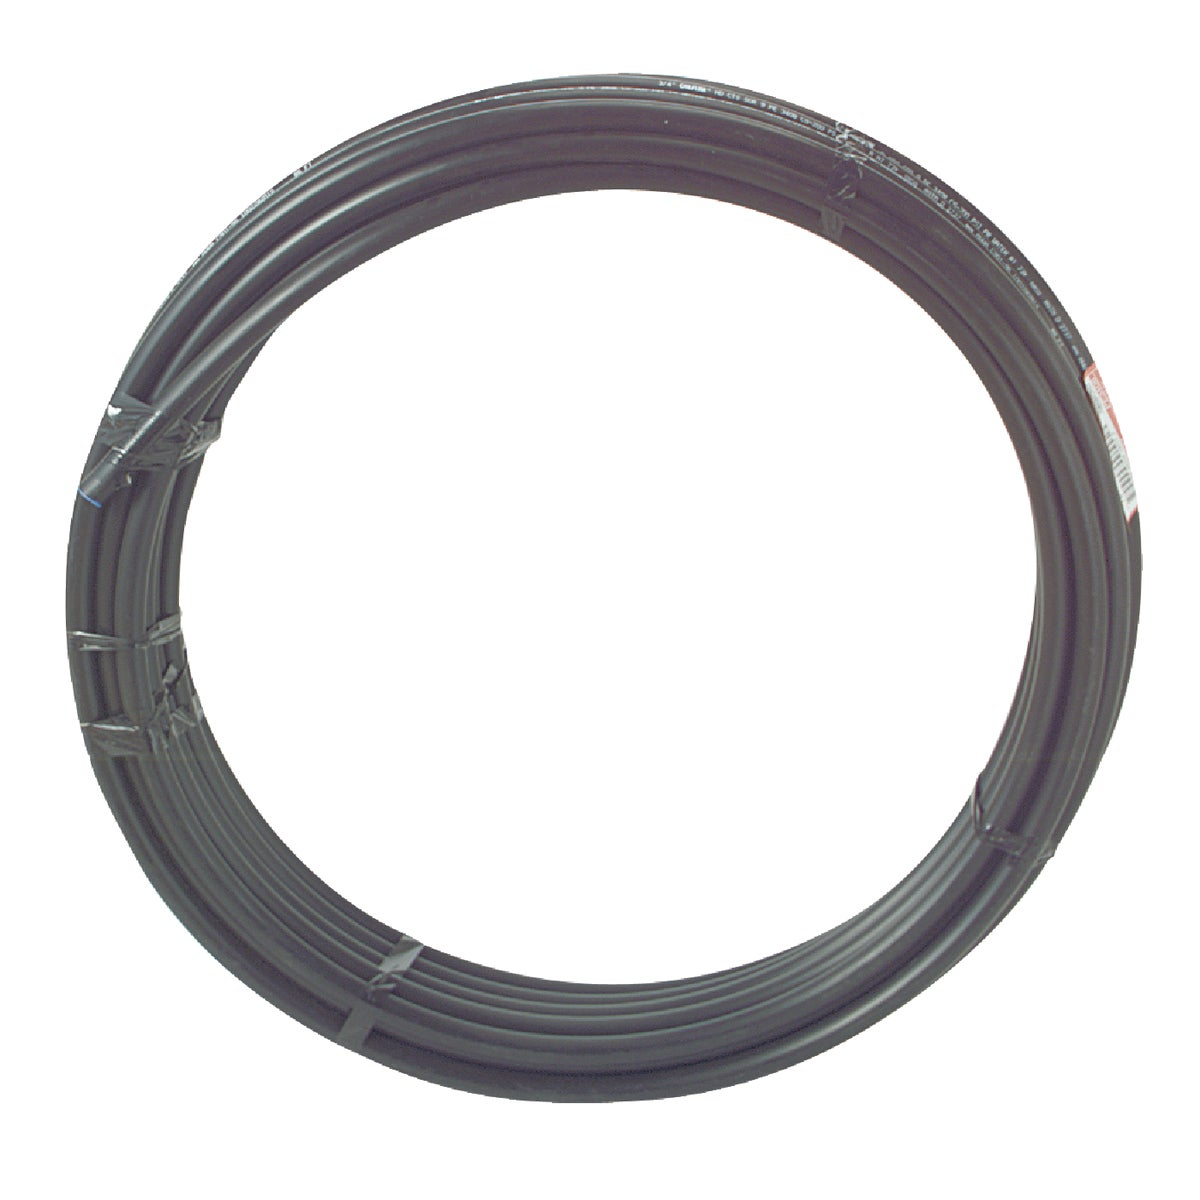 """3/4""""X100' CTS PIPE - 18515 by Cresline Plastic Co"""